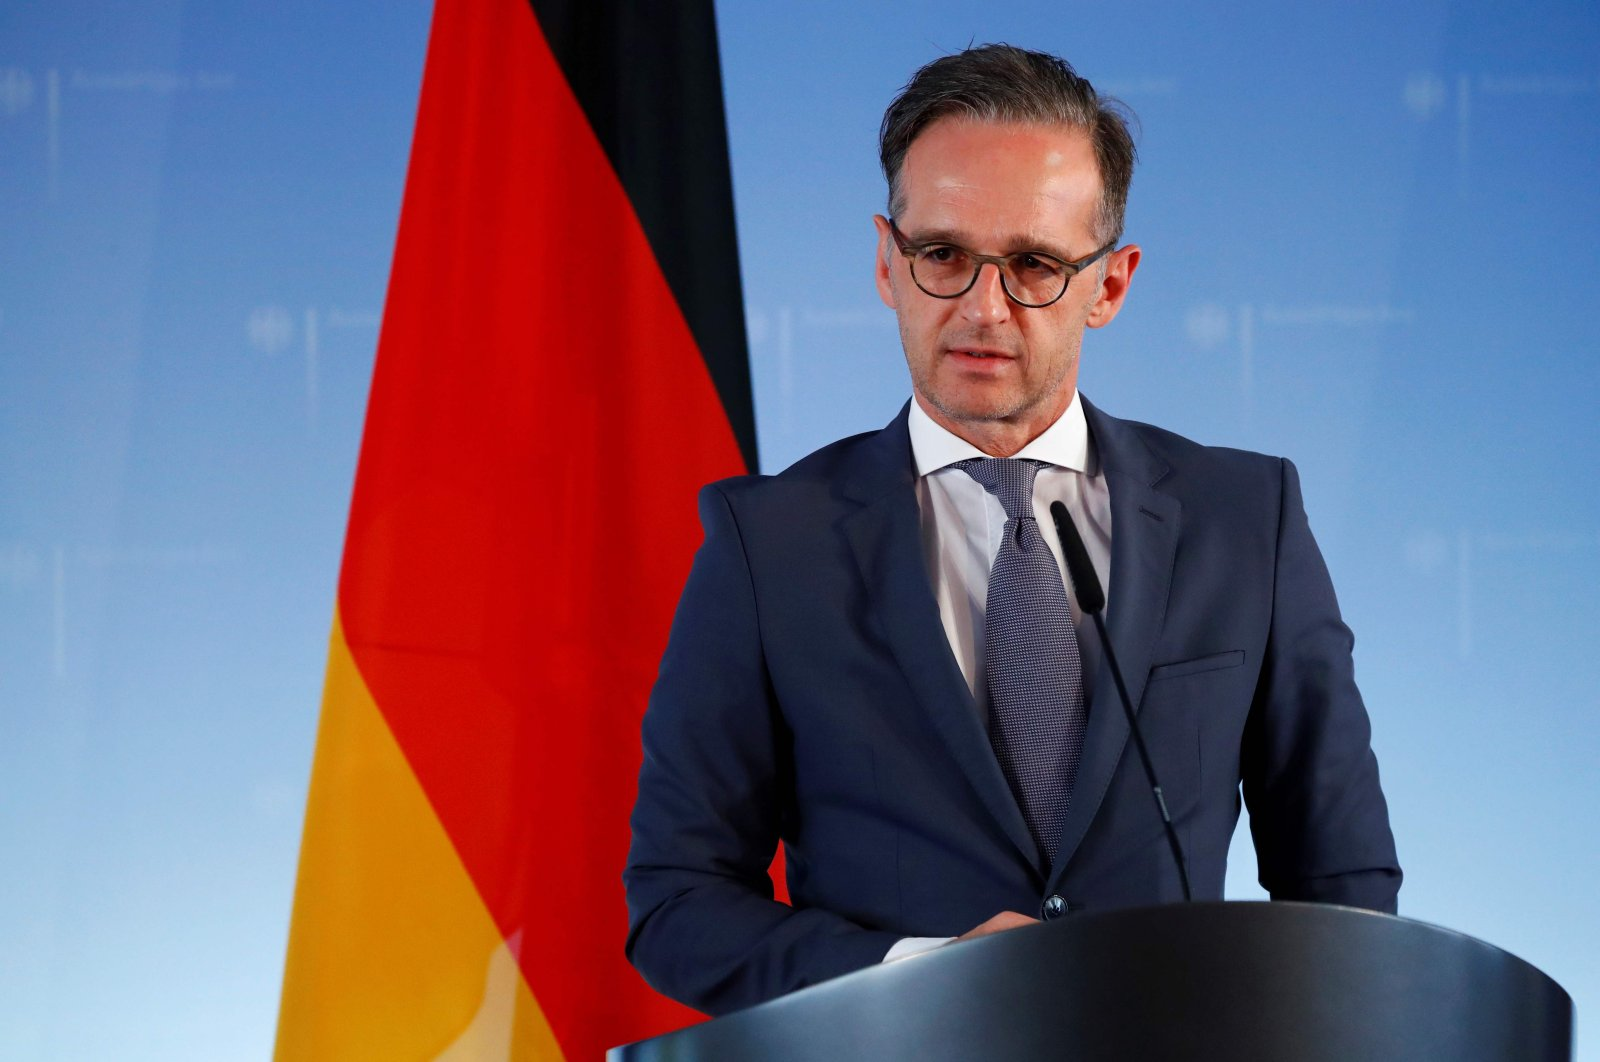 German Foreign Minister Heiko Maas attends a joint news conference with his Ukrainian counterpart Dmytro Kuleba (unseen) after bilateral discussions in Berlin, June 2, 2020. (AFP Photo)